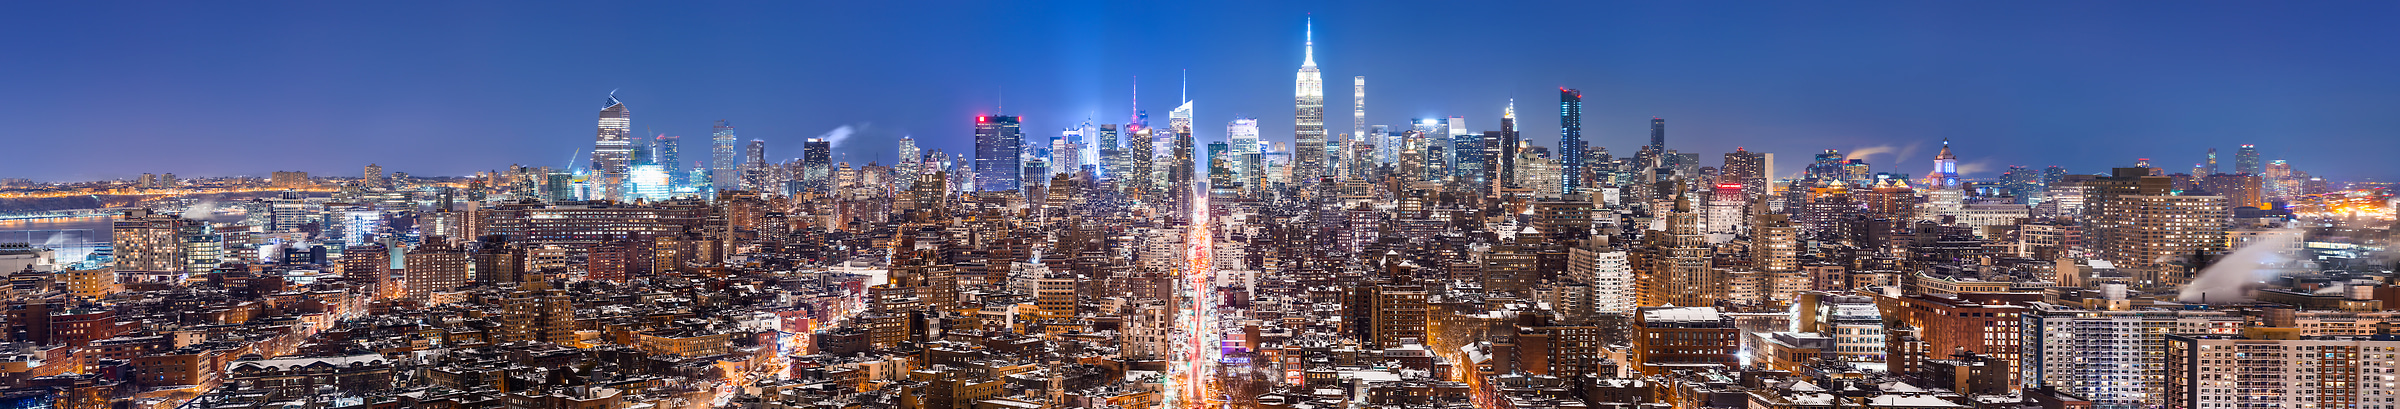 4,636 megapixels! A very high definition, large-format VAST photo print of the NYC skyline in winter snow at night; cityscape fine art photo created by Dan Piech in New York City